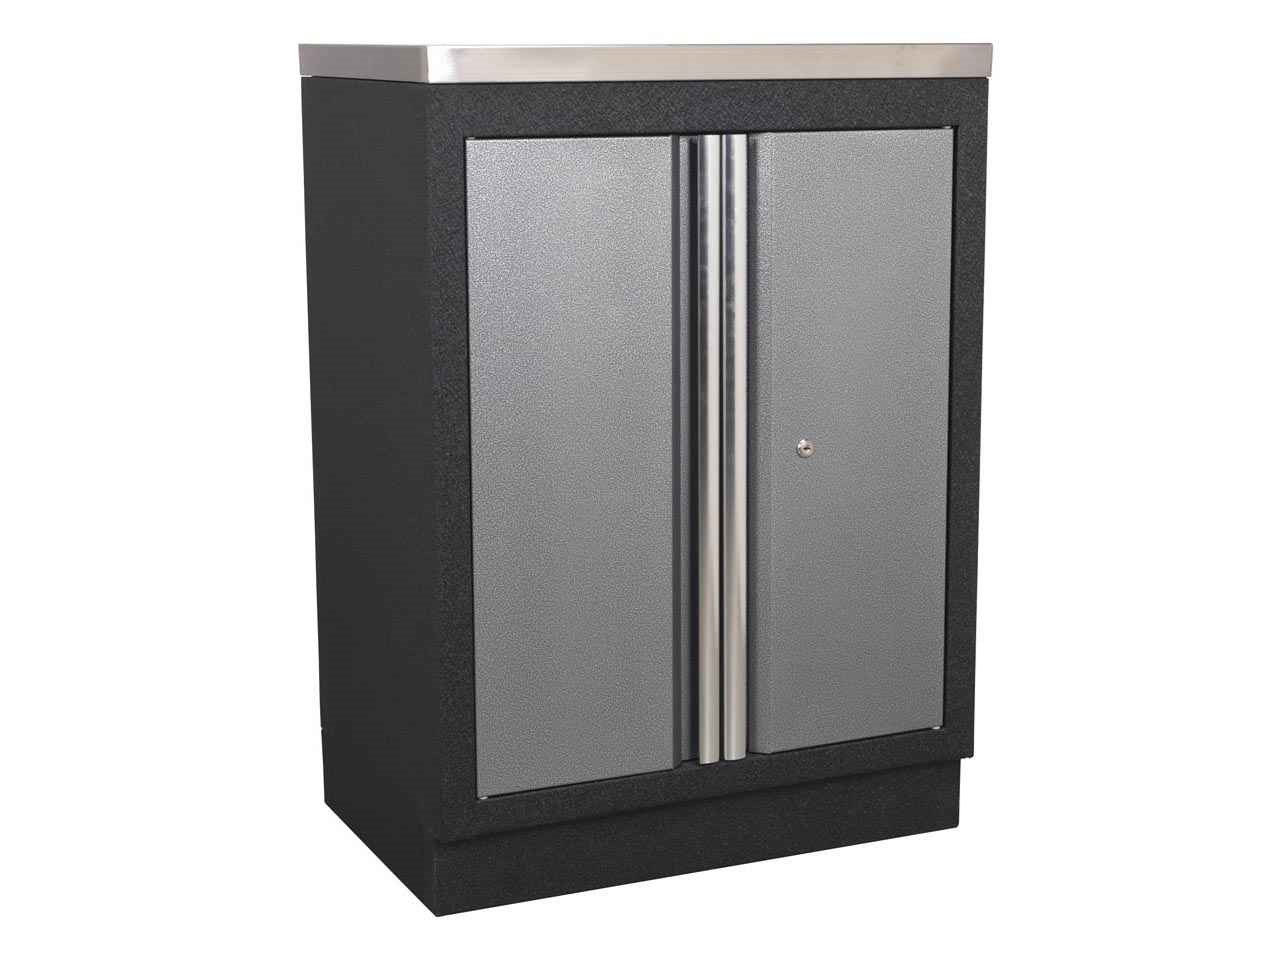 Surprising Sealey Apms52 Modular 2 Door Floor Cabinet 680Mm Interior Design Ideas Clesiryabchikinfo